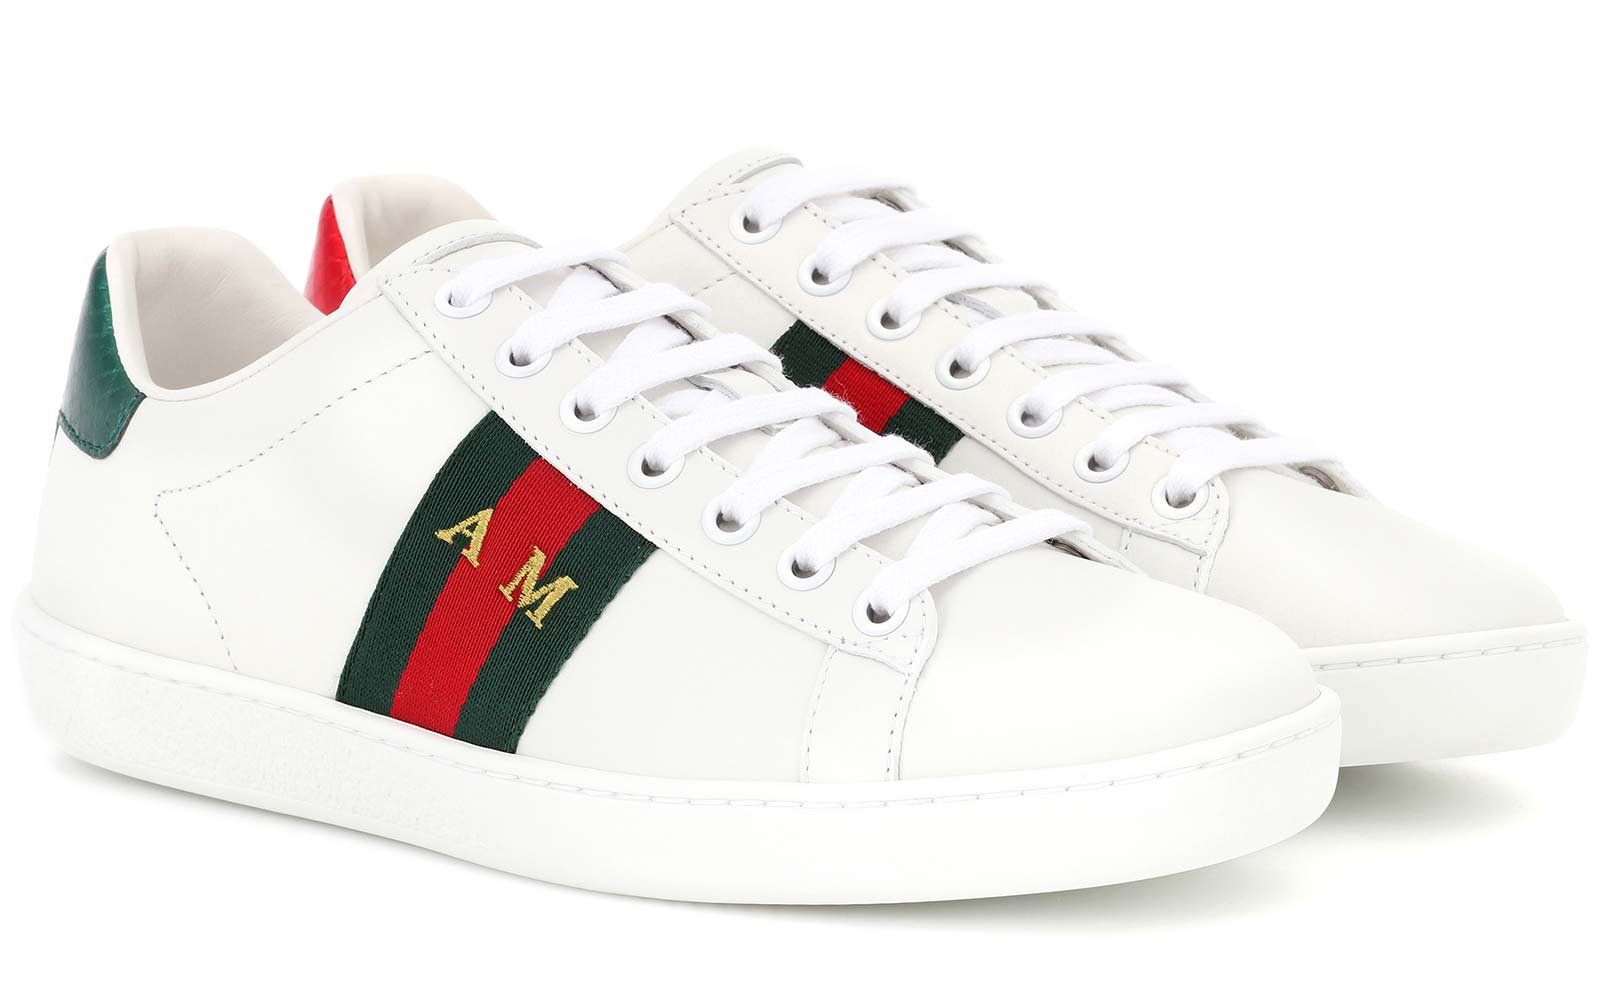 d2dbafff7 Gucci's Ace Sneaker Can Now Be Personalized With Your Initials ...